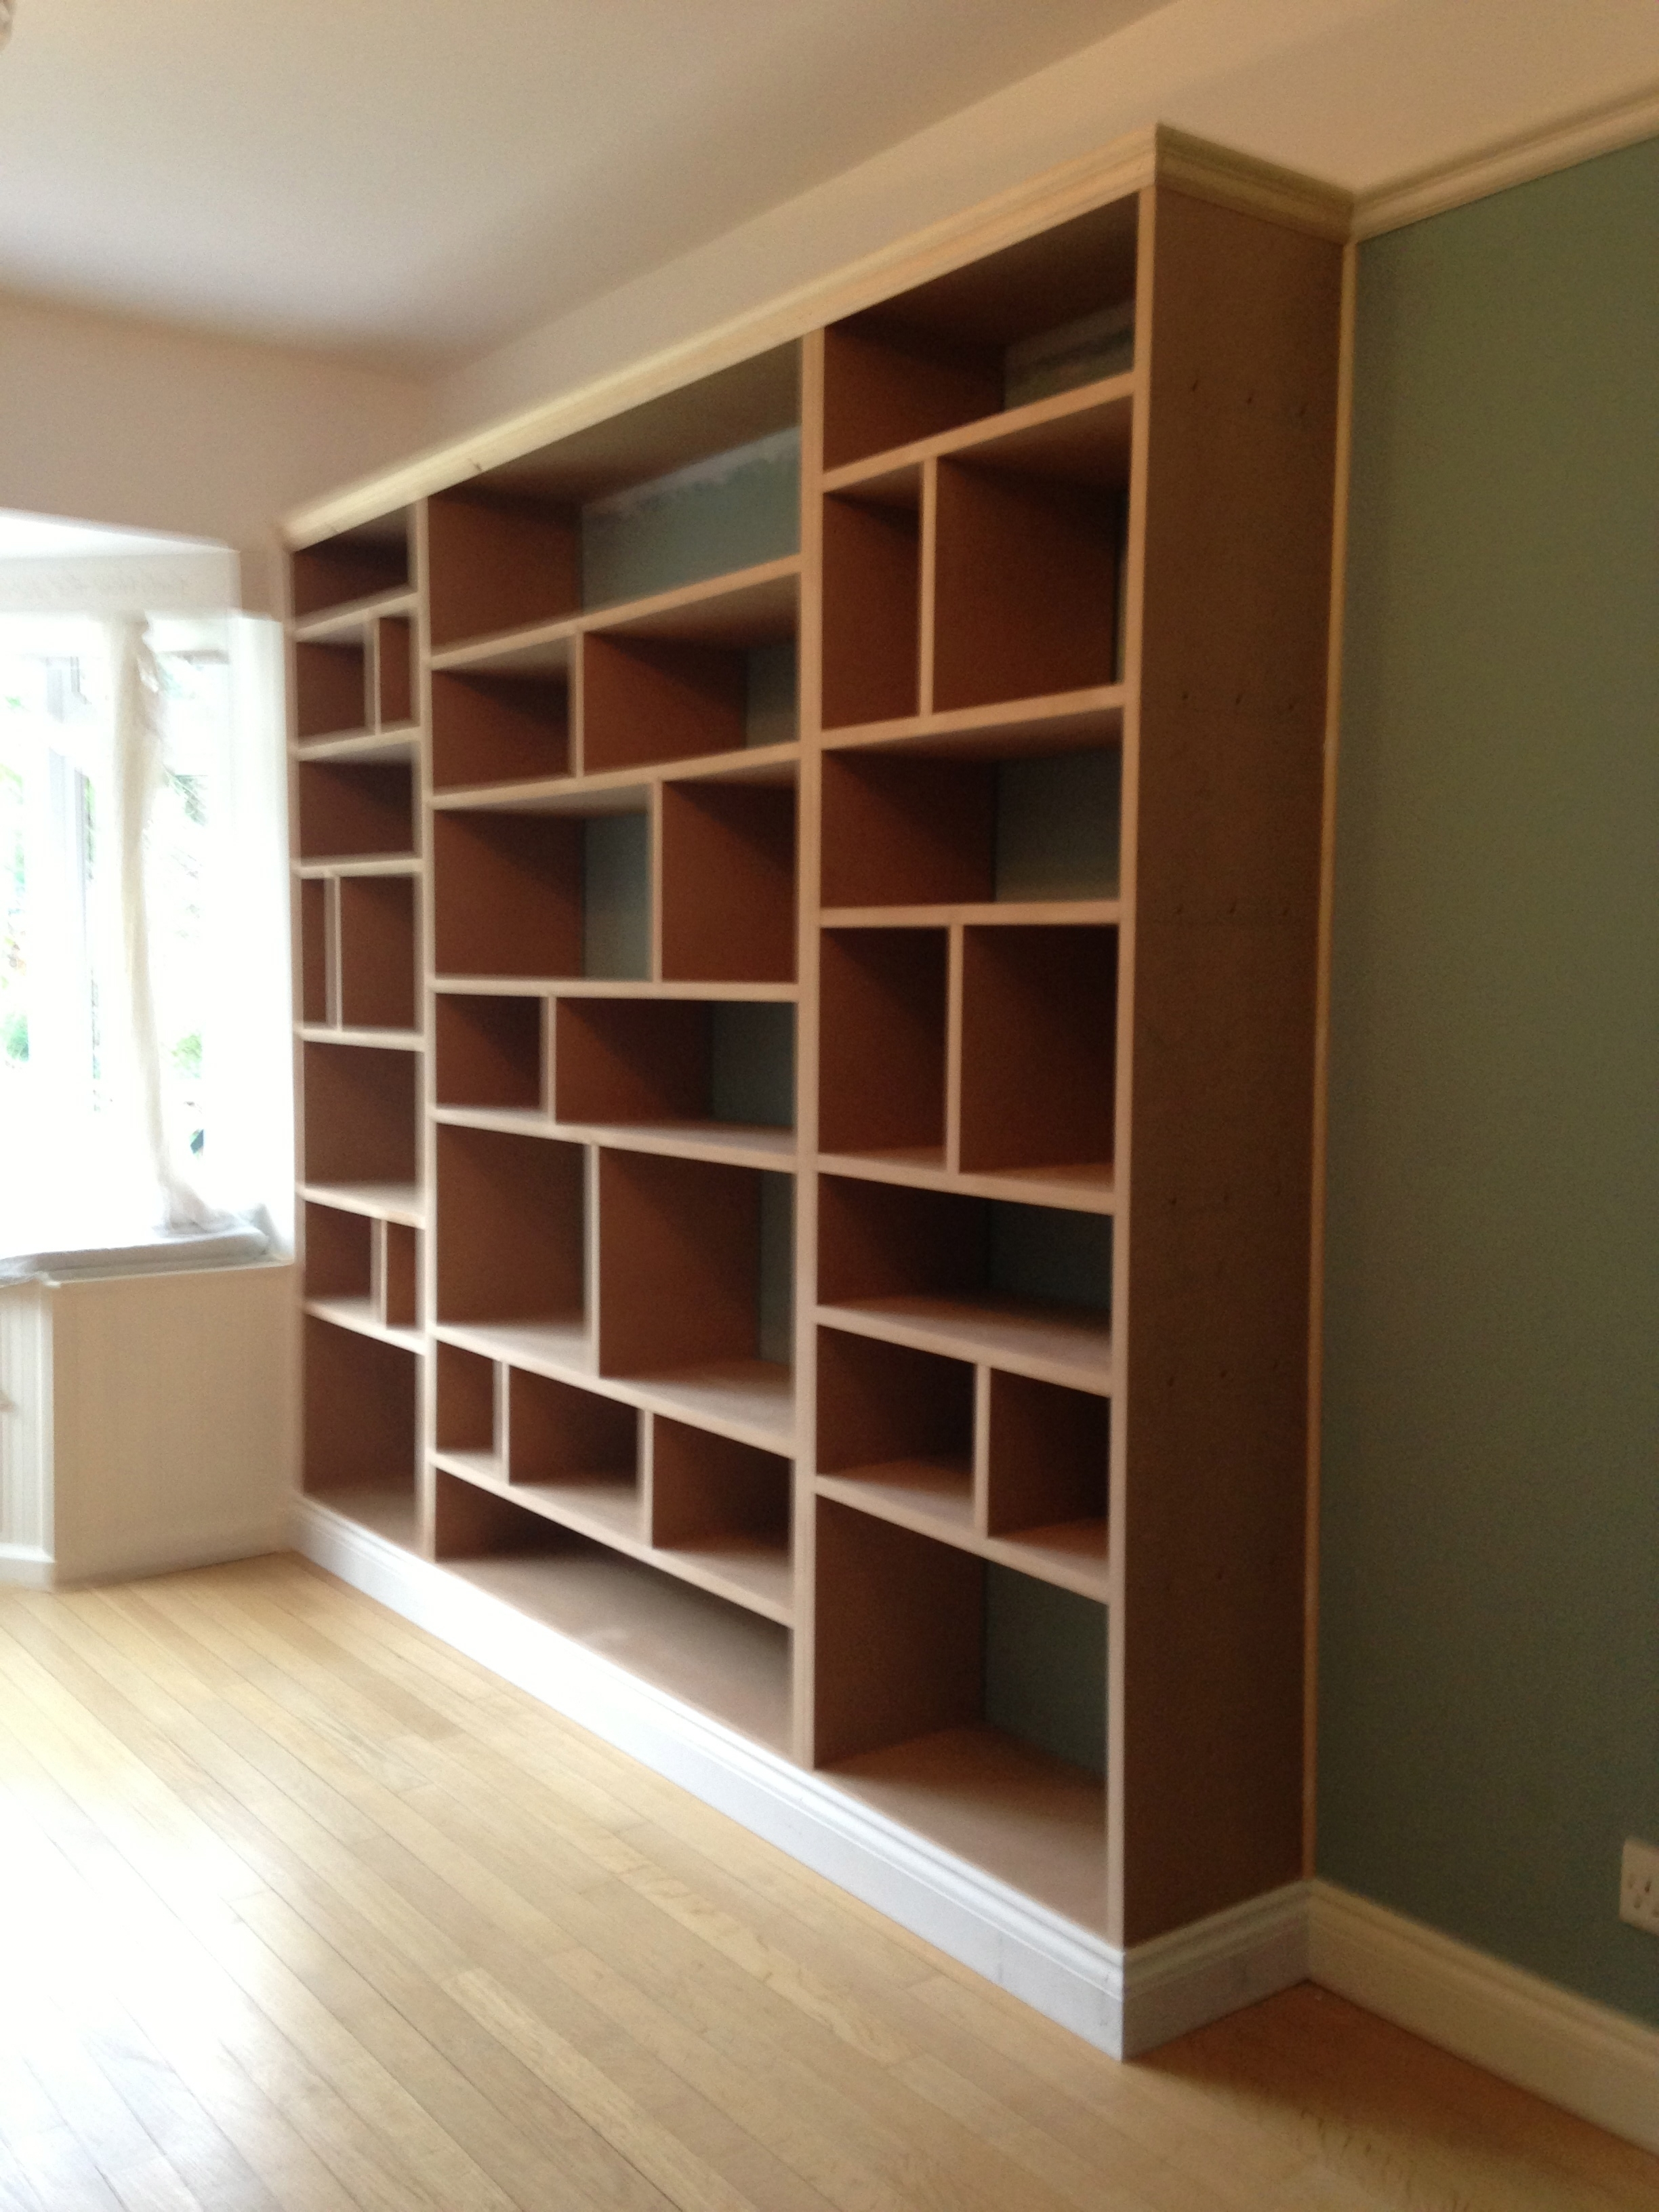 Preferred Fitted Bookcases With Fitted Shelving, Cupboards And Flooring – P D Carpentry & Building (View 10 of 15)